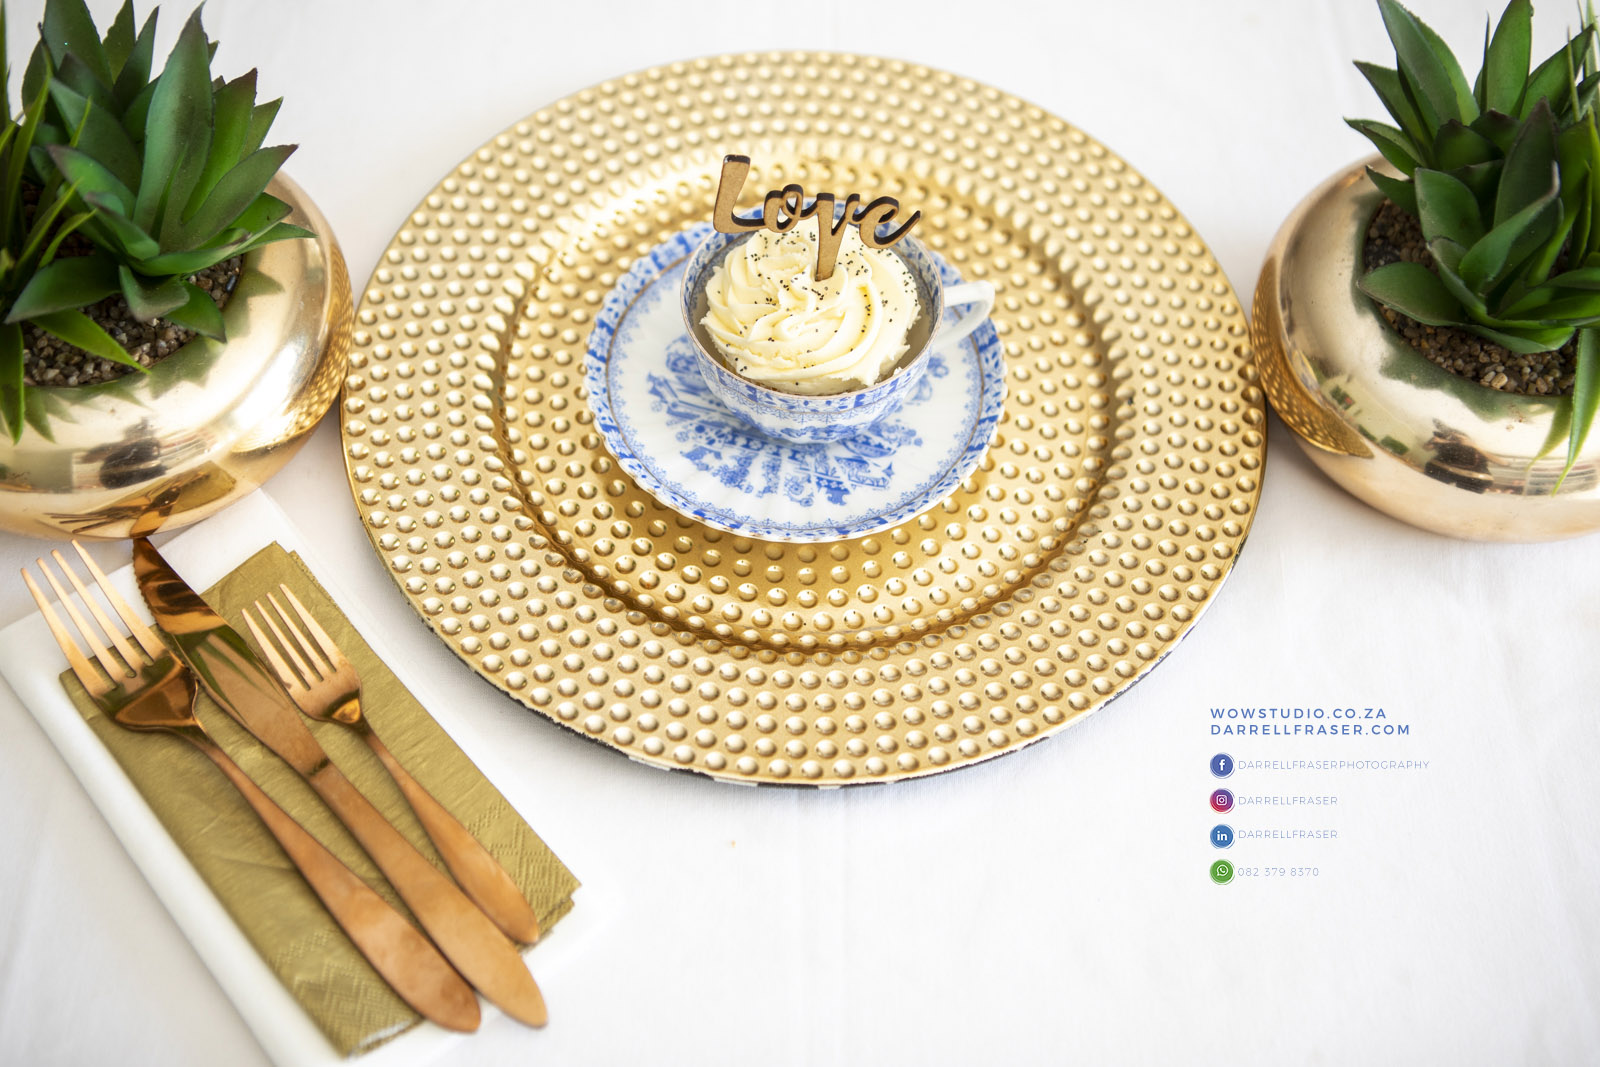 WOW Creative Design Studio Product and Food Photography and Content Creator Darrell Fraser